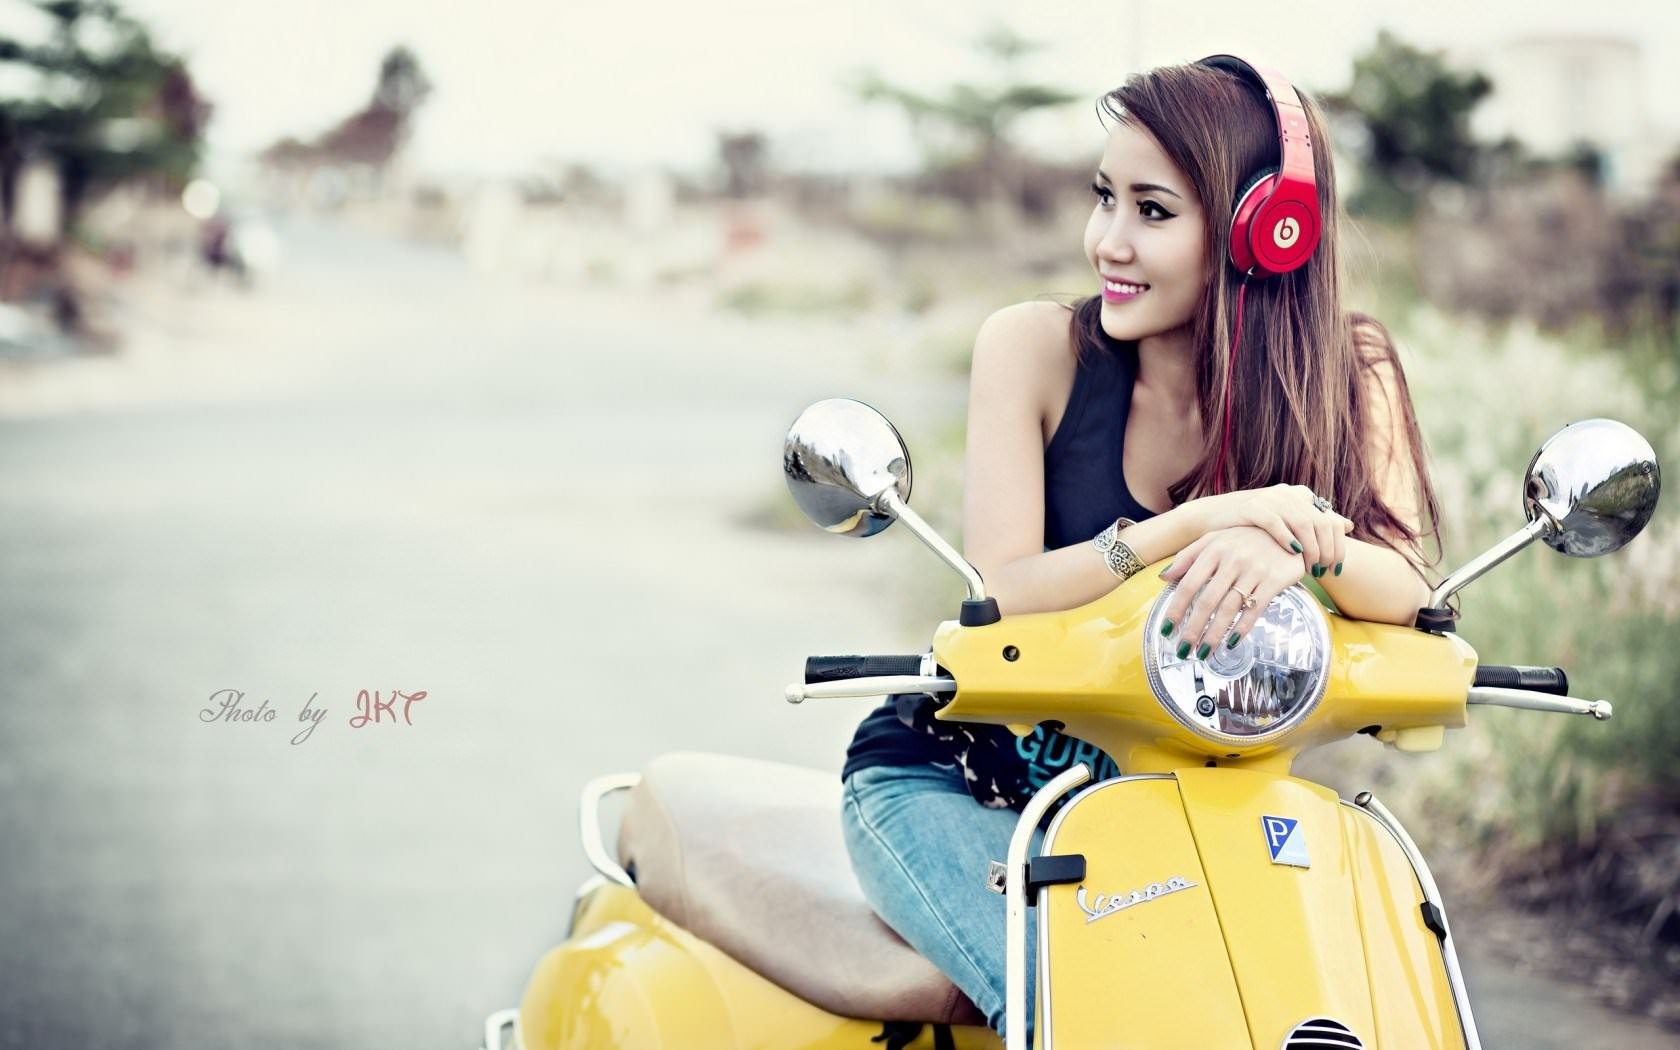 Asian Girl Smiling on Scooter with Headphones